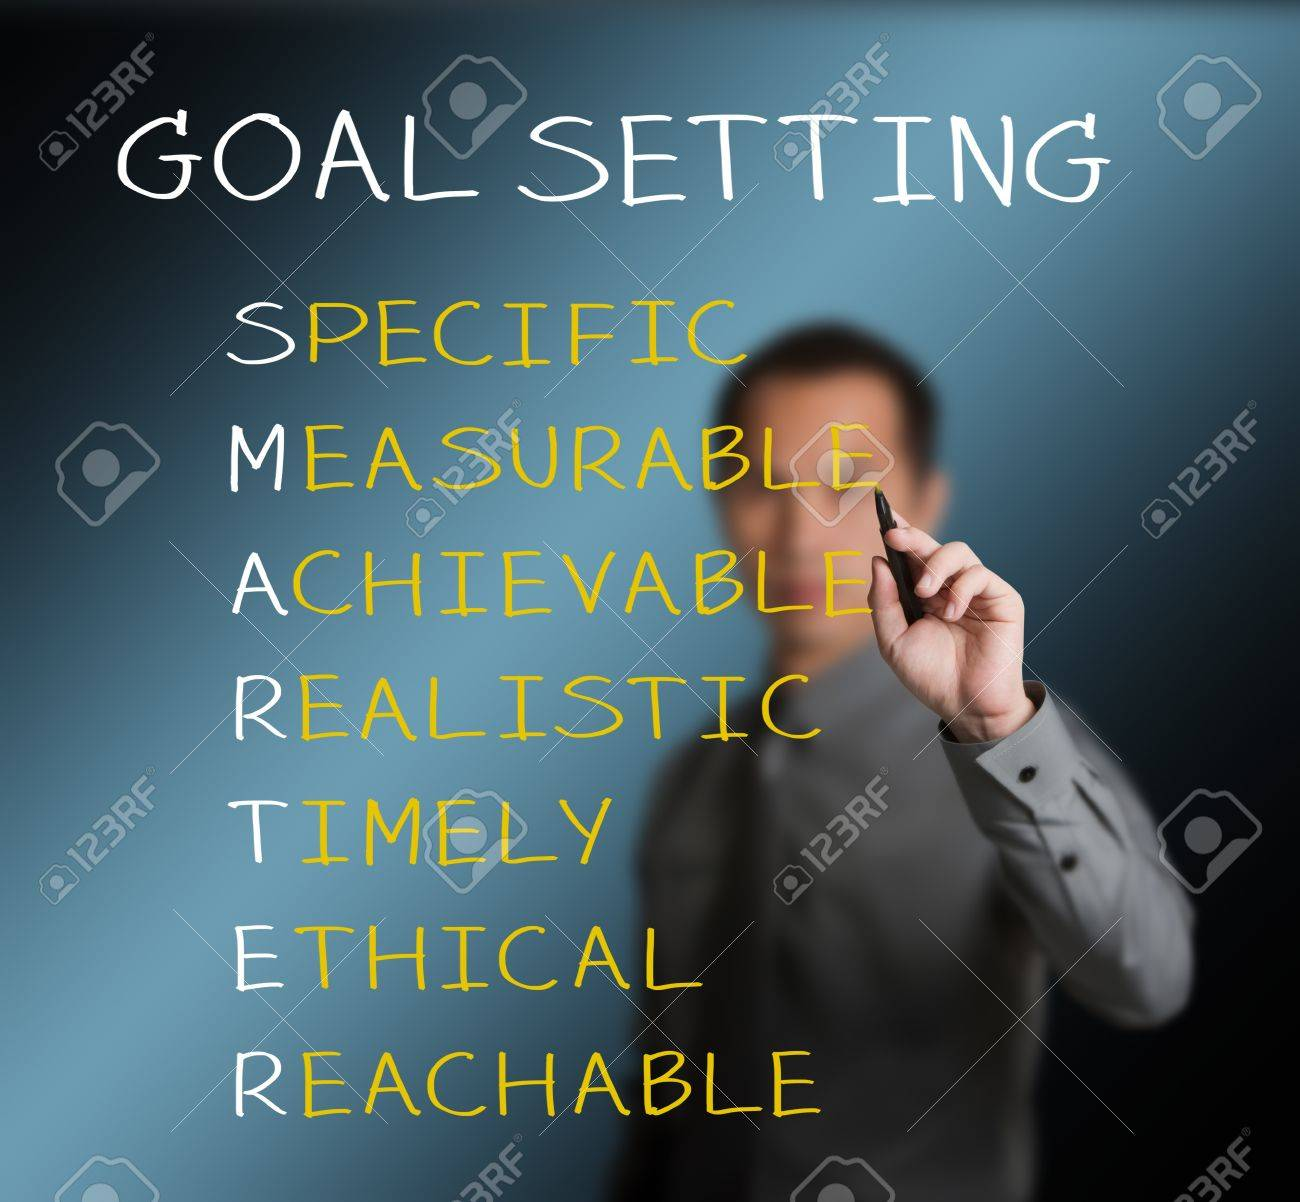 business man writing  concept of smarter goal or objective setting - specific - measurable - achievable realistic - timely - ethical - reachable Stock Photo - 14123804